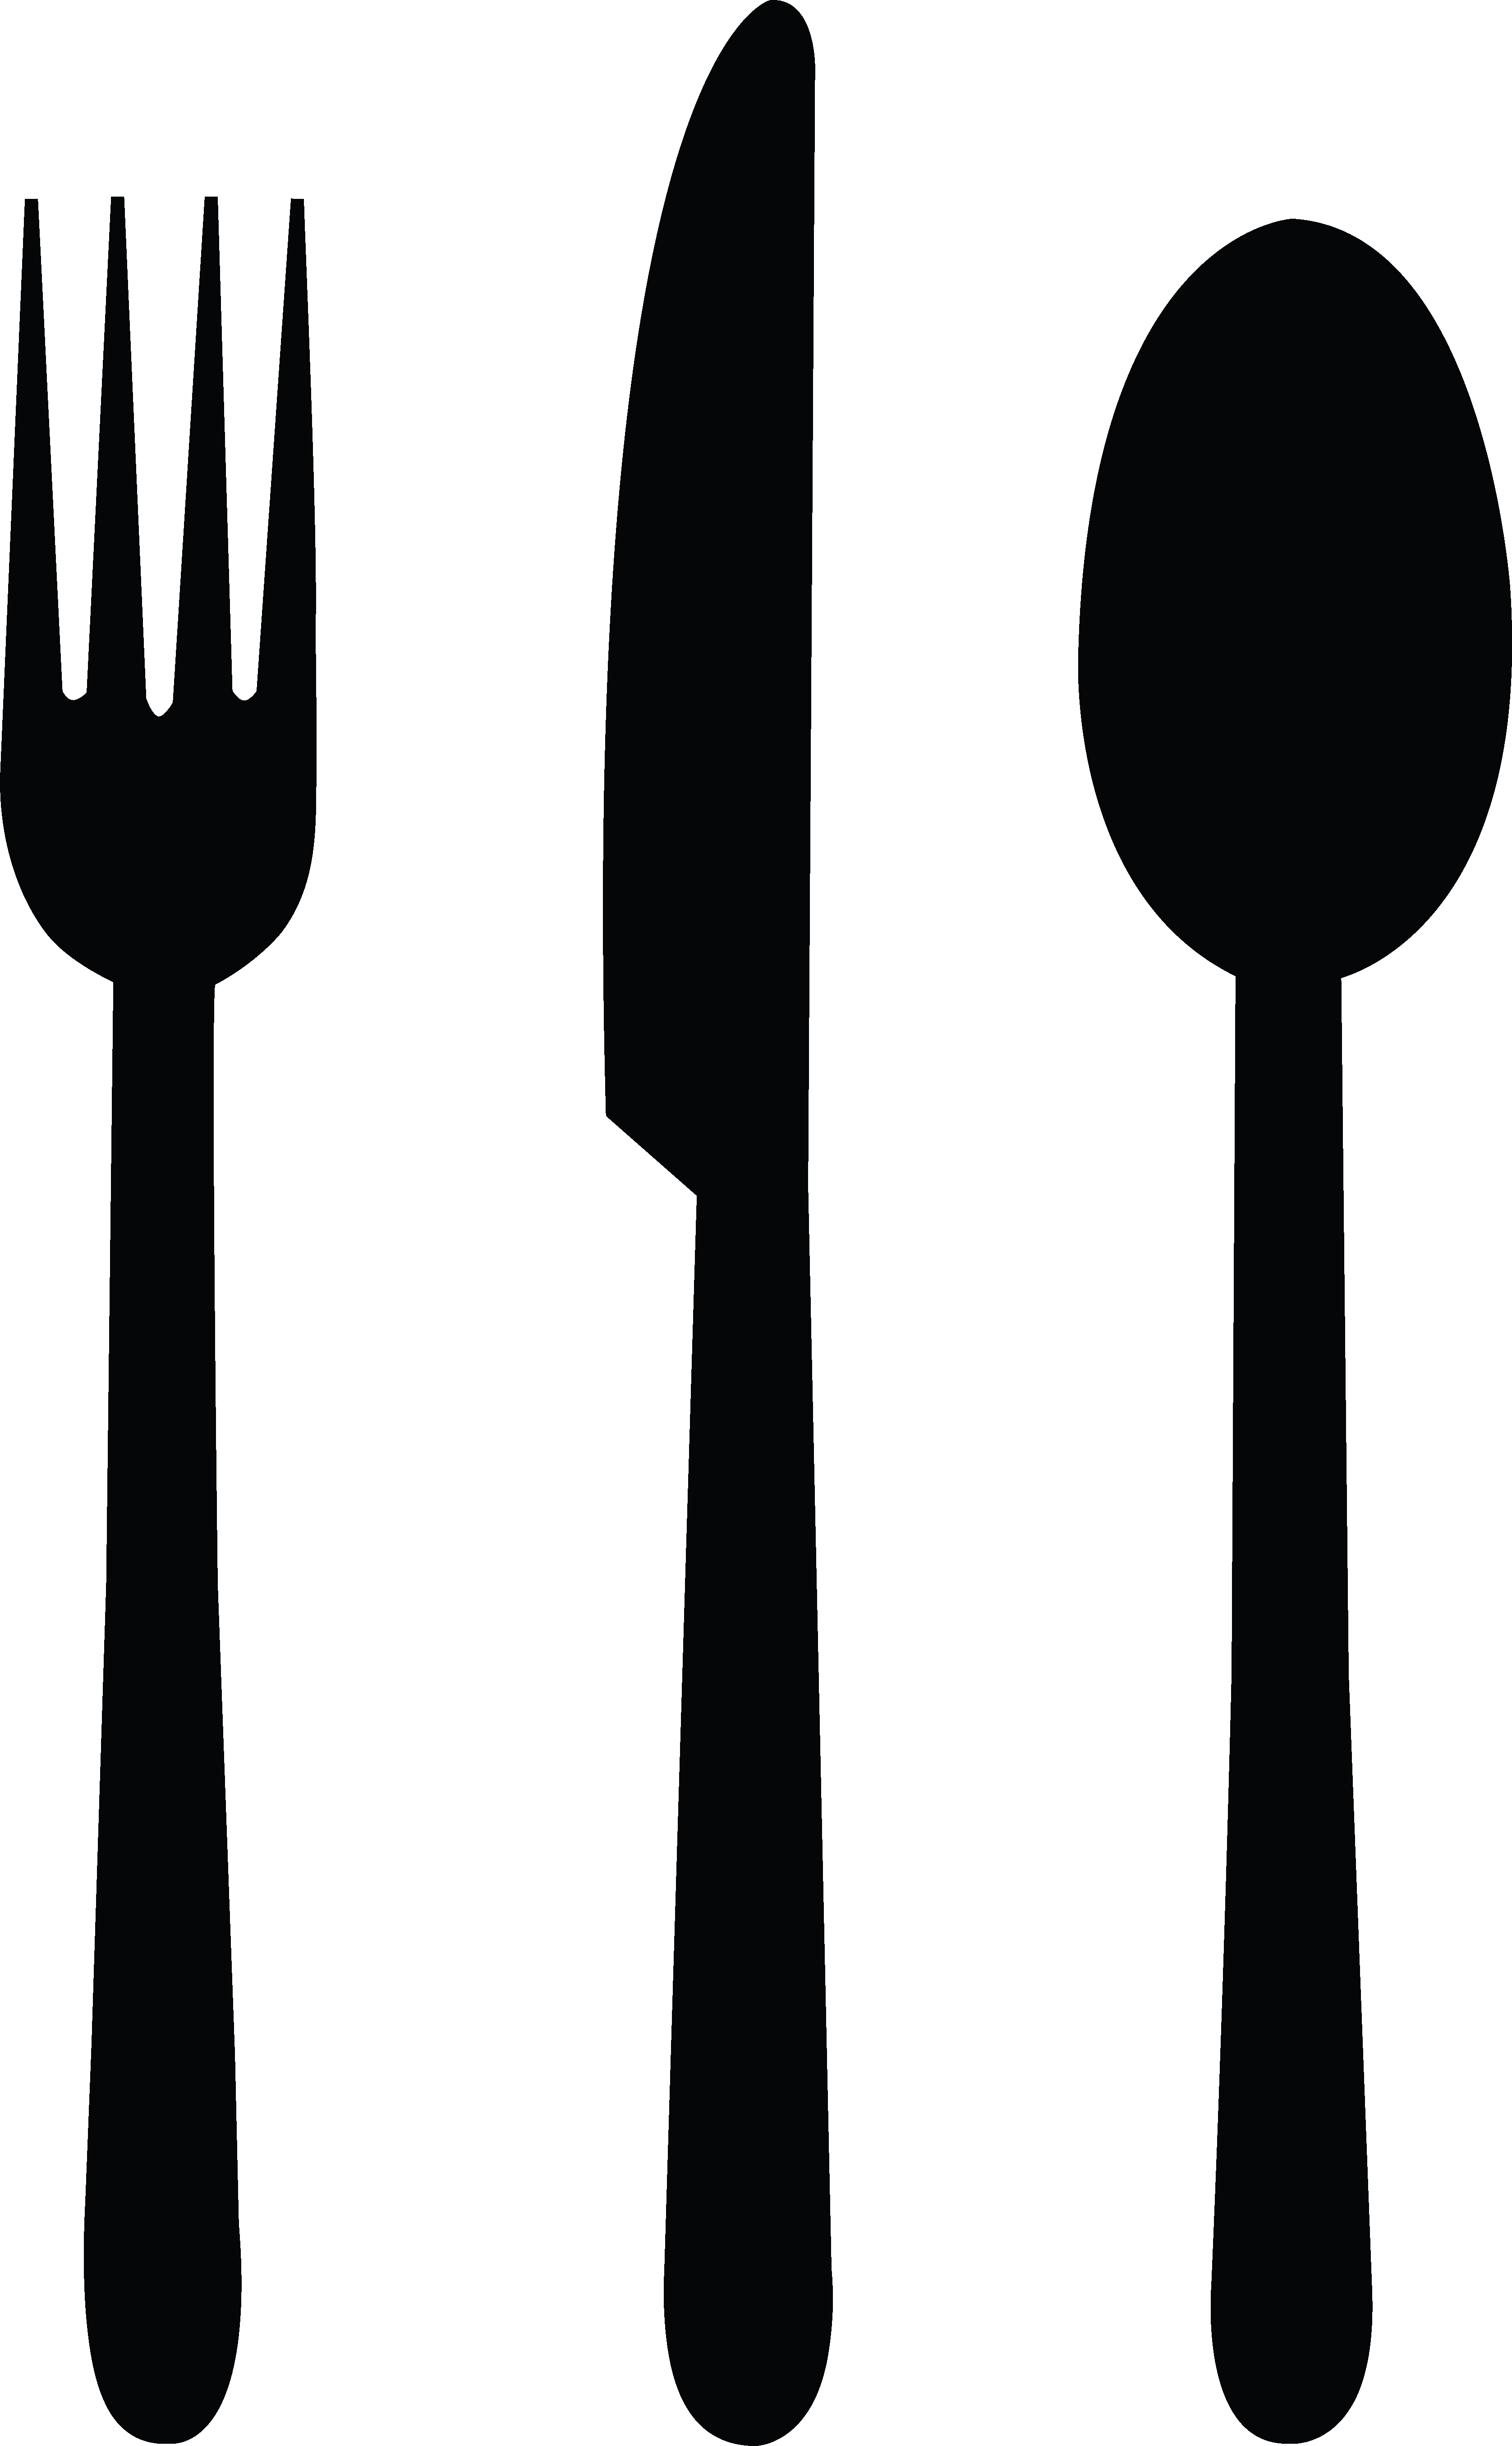 Clipart fork and knife image black and white download Spoon Clipart Black And White | Free download best Spoon Clipart ... image black and white download